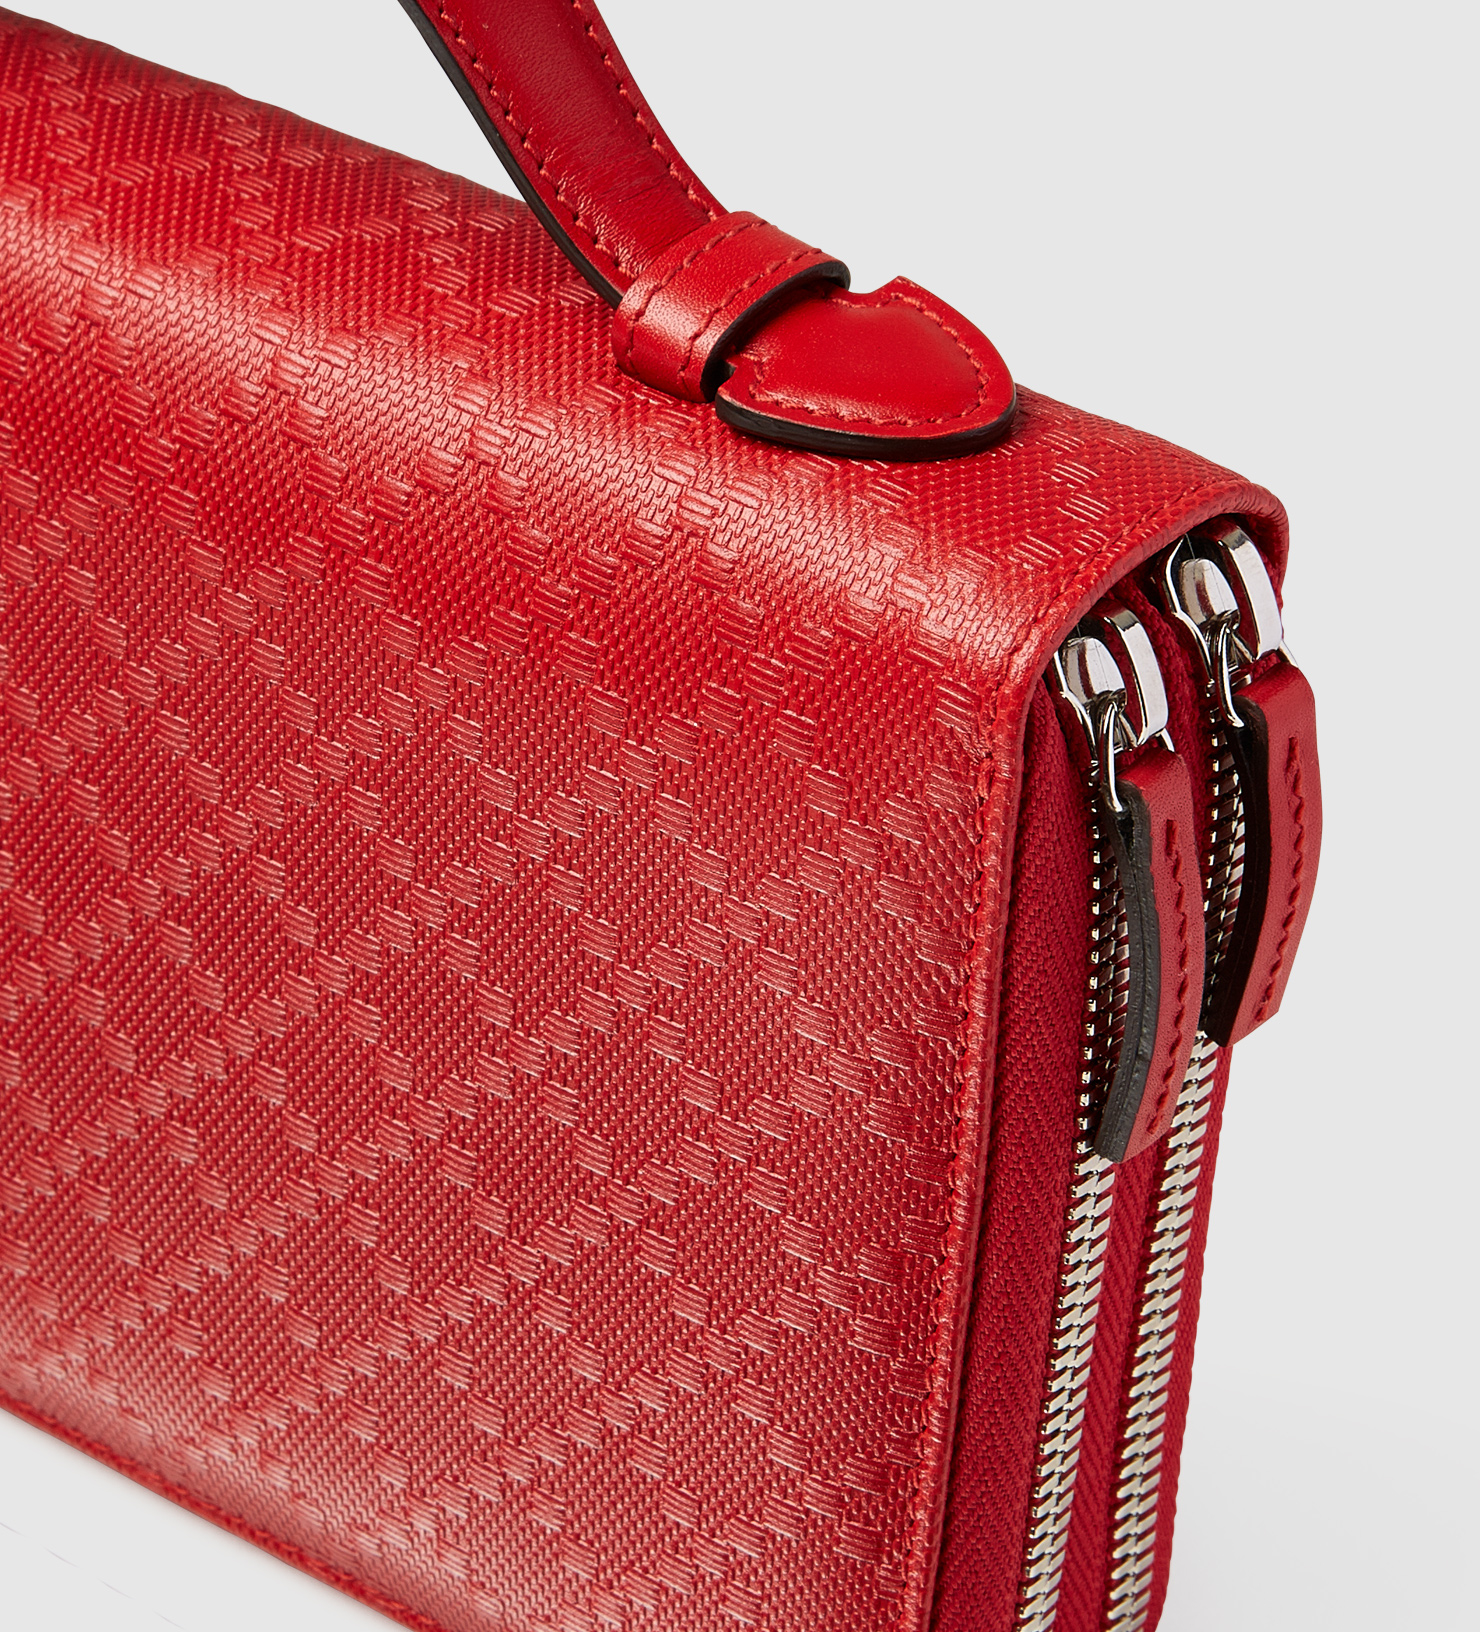 434c5fe29e47 Gucci Diamante Leather Travel Document Case in Red for Men - Lyst